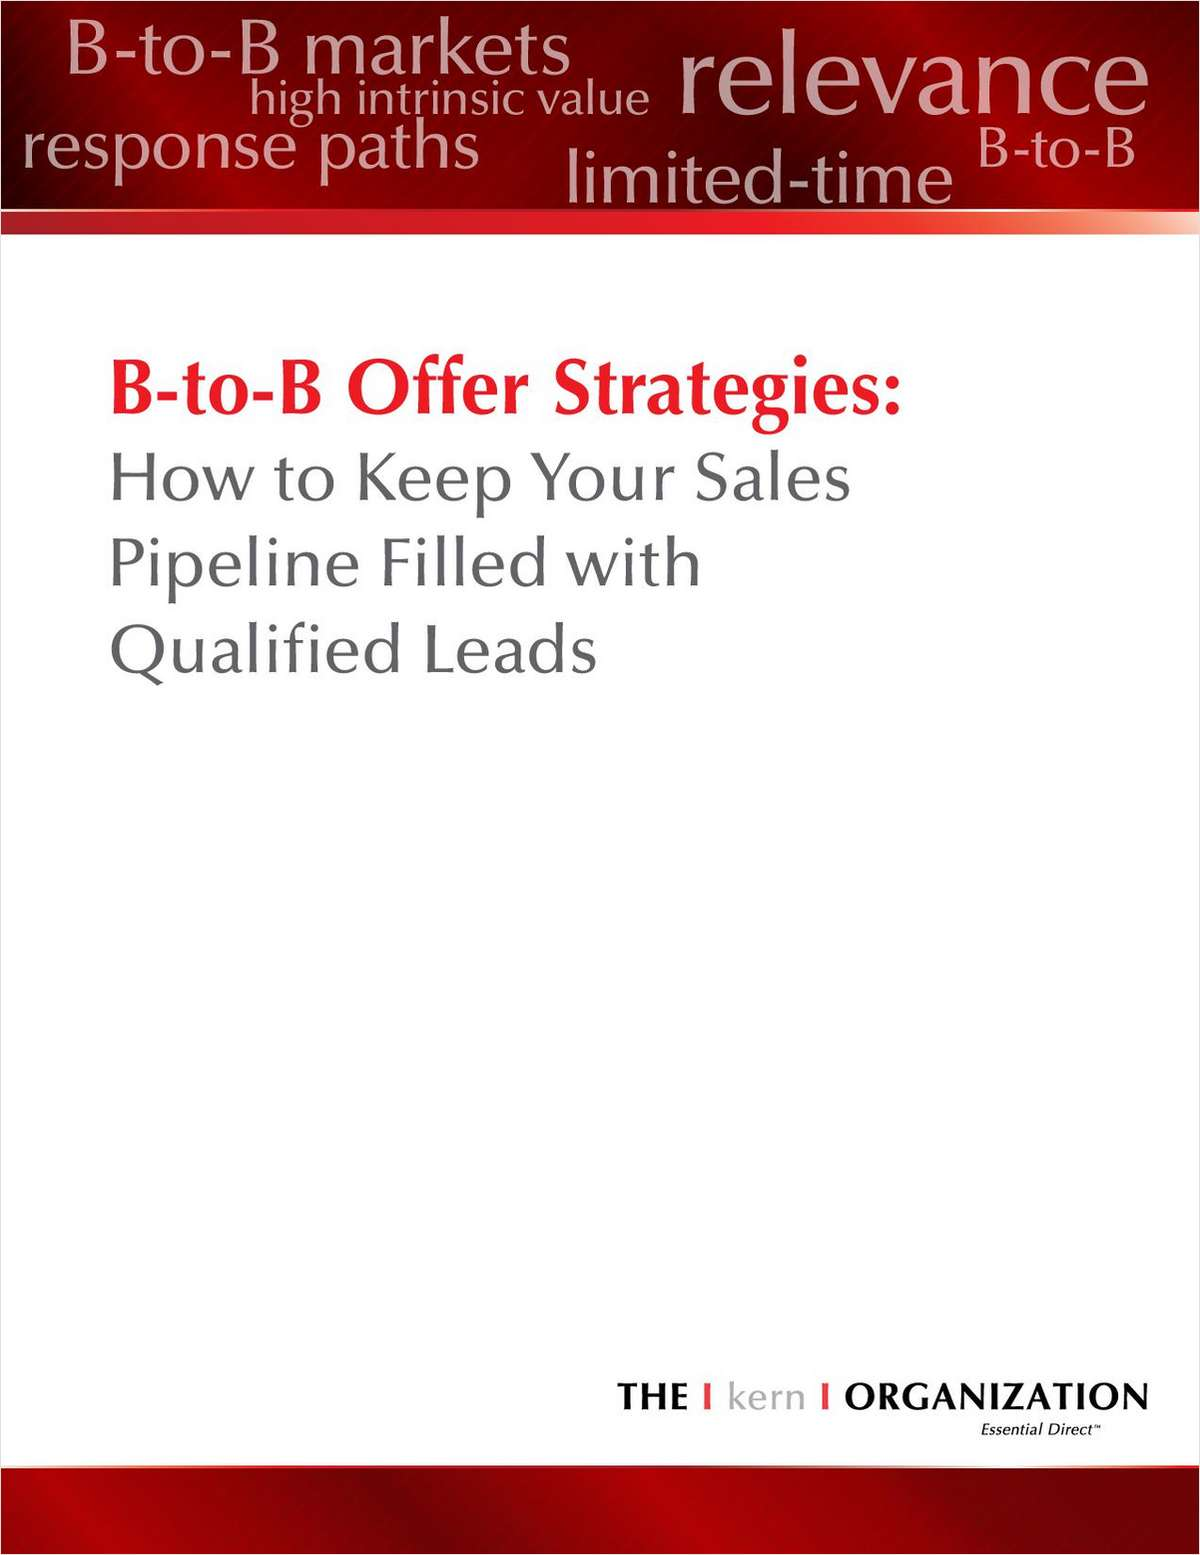 B-to-B Offer Strategies: How to Keep Your Sales Pipeline Filled with Qualified Leads